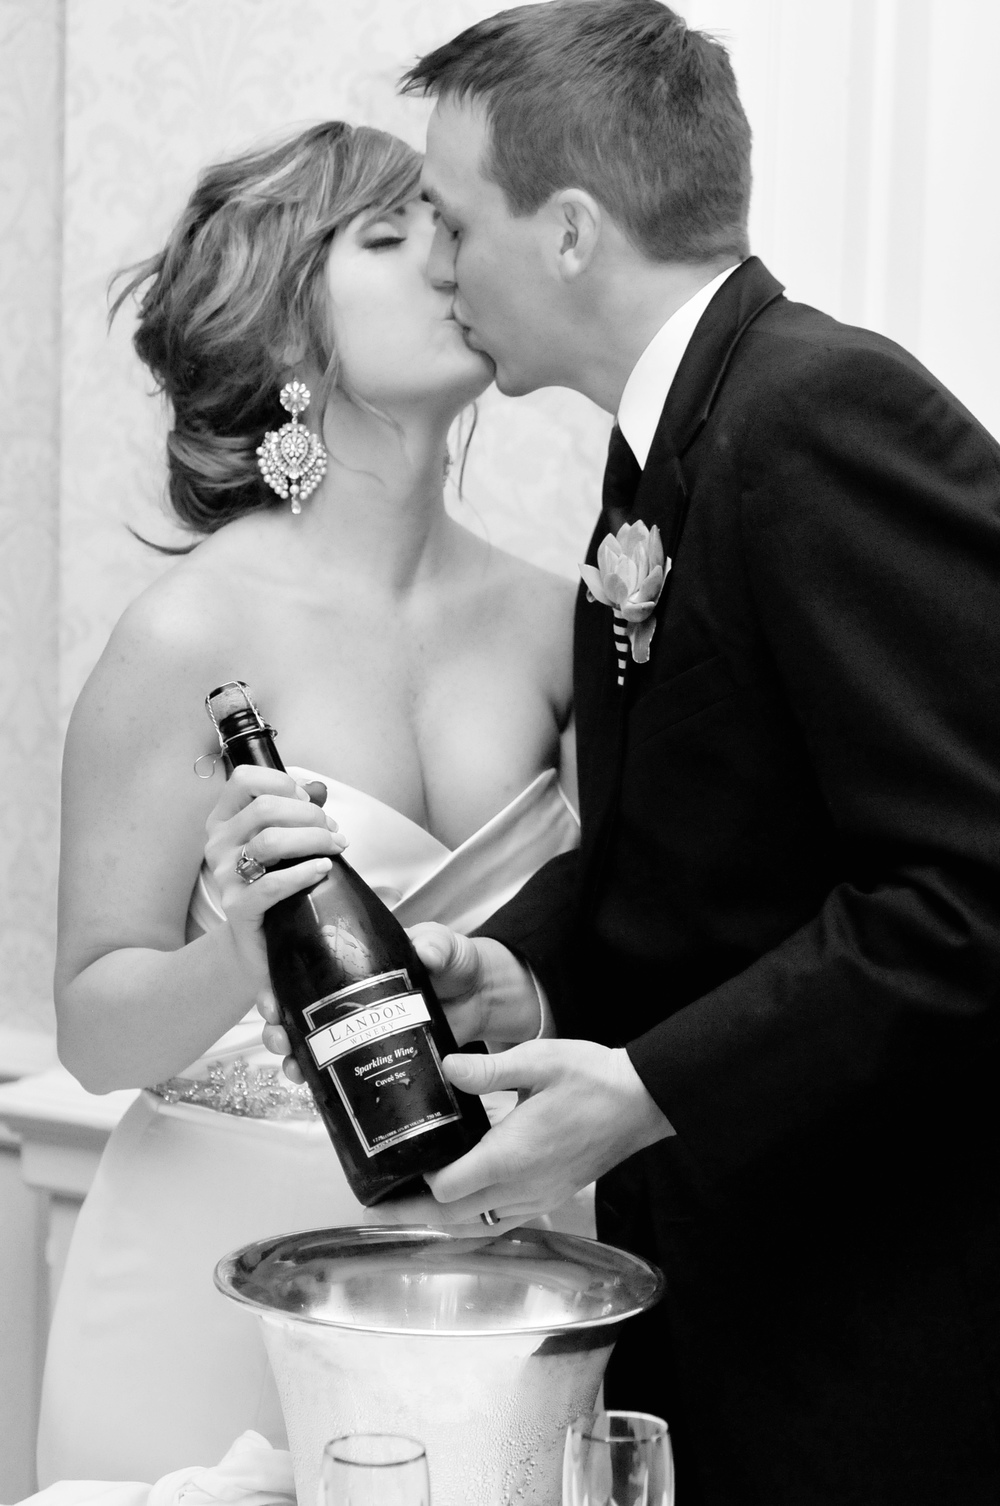 Our special wedding day champagne from Landon Winery 2011.